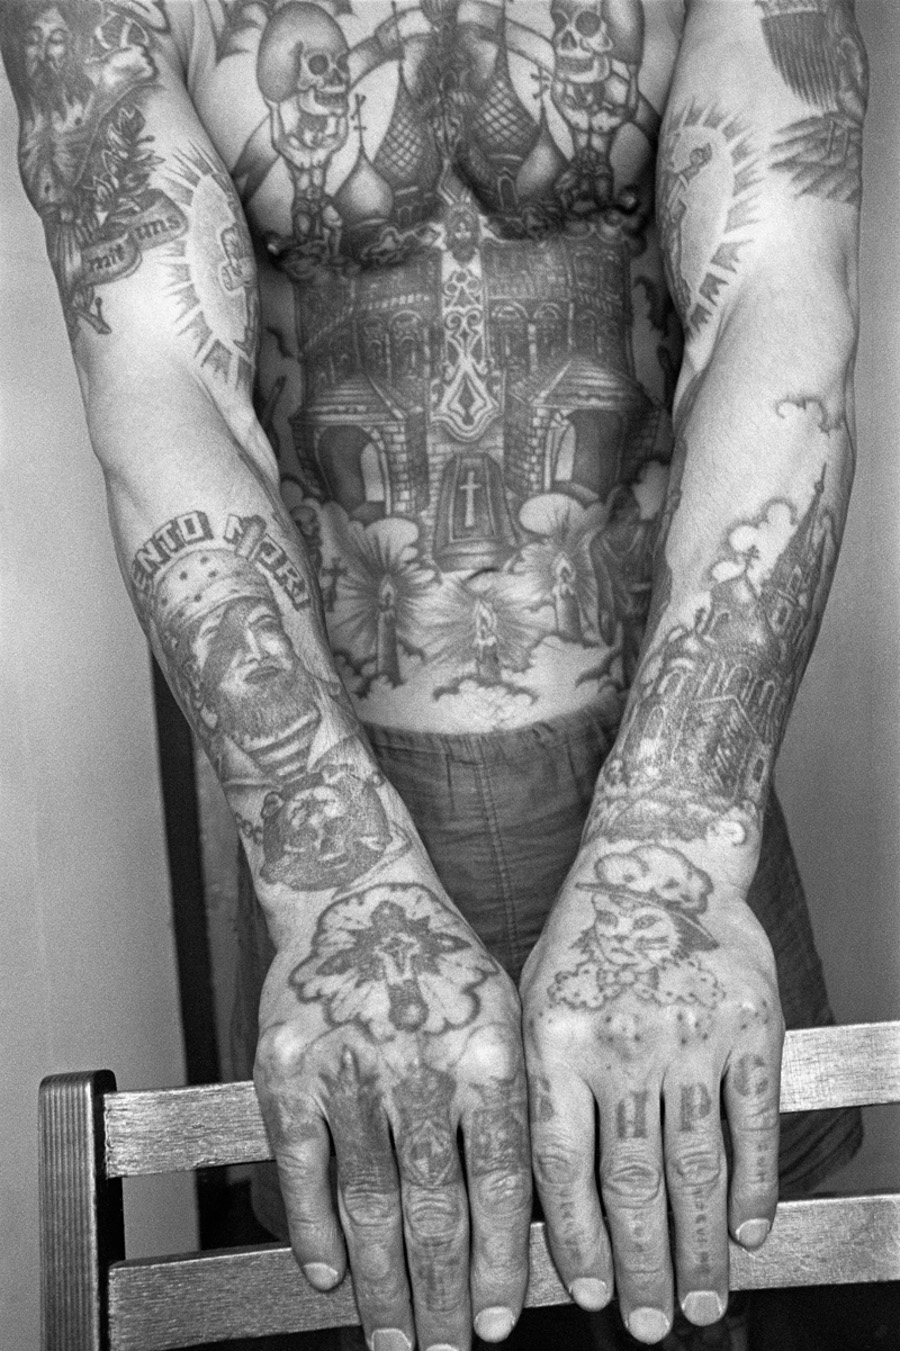 Russian Tattoos 11